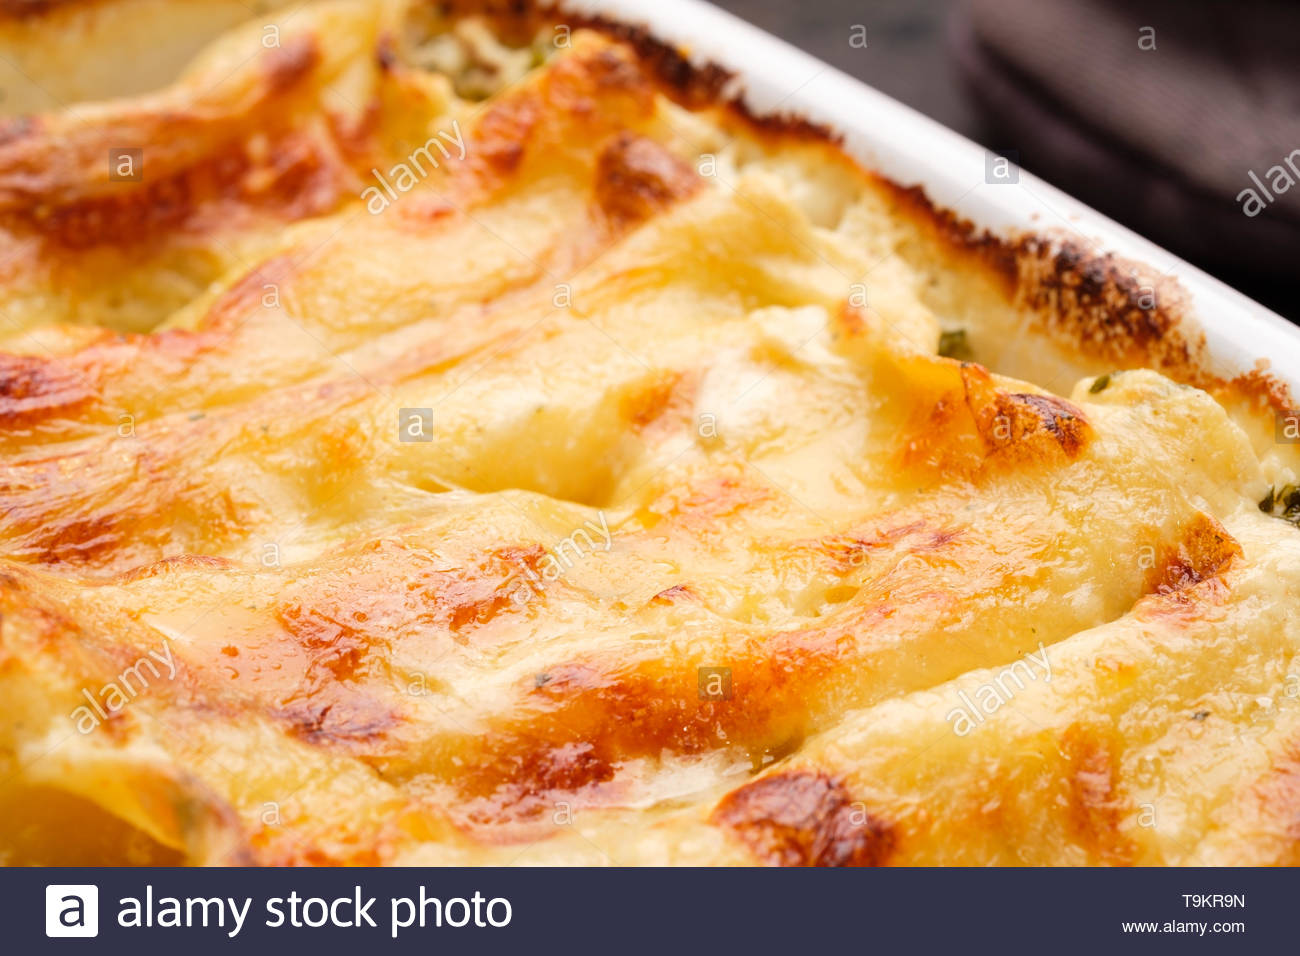 Close-up Canelloni with farmers cheese gratinated and filled - Stock Image